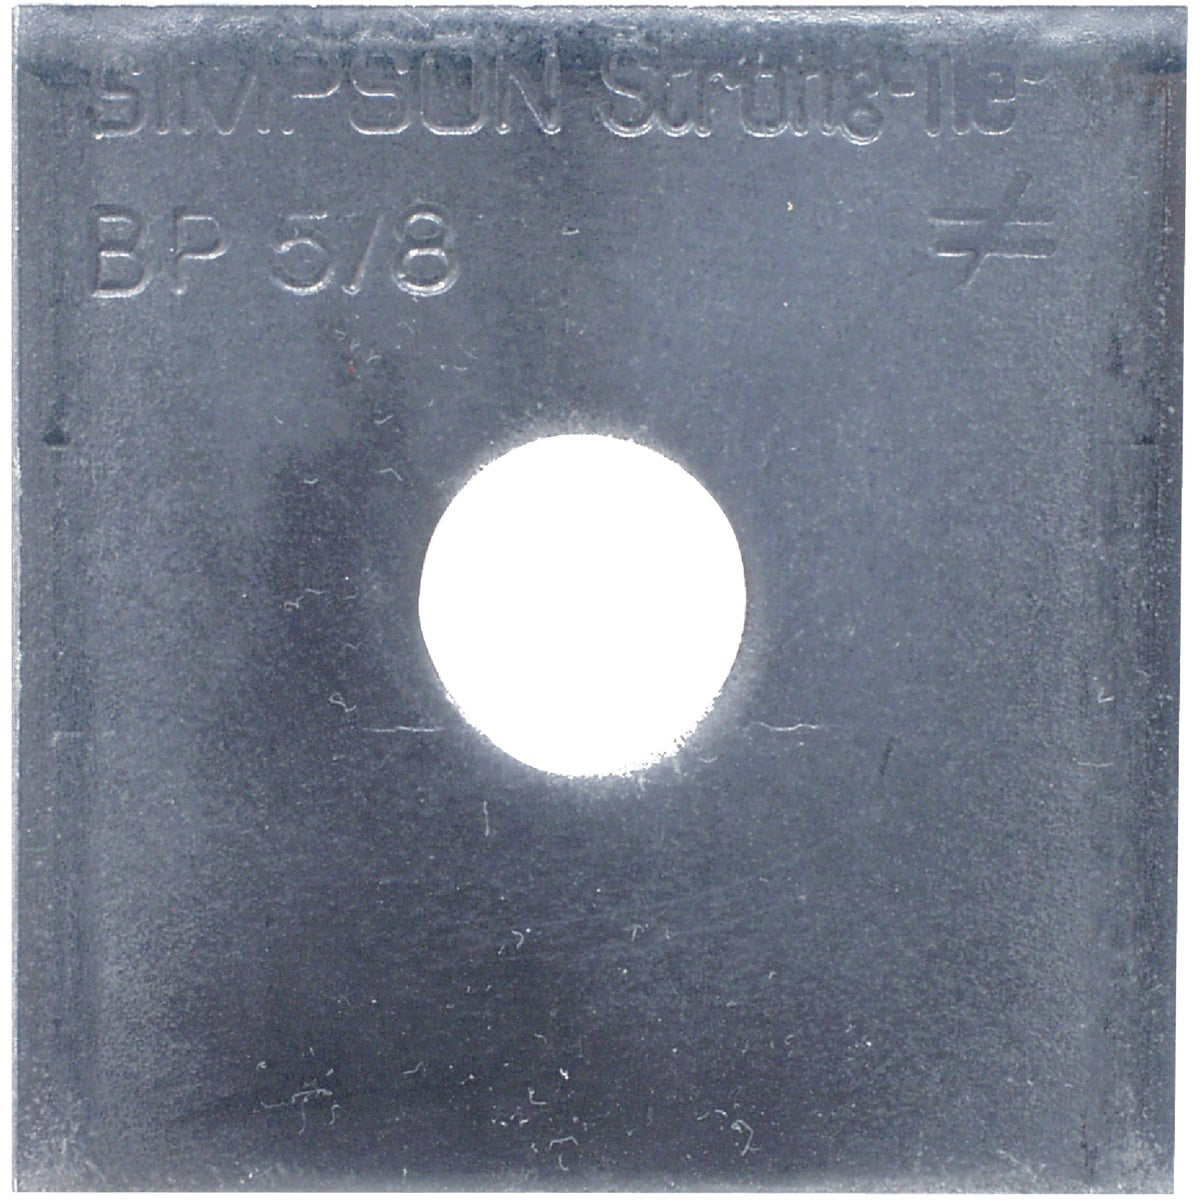 5/8 BEARING PLATE - BP 5/8 by Simpson Strong Tie